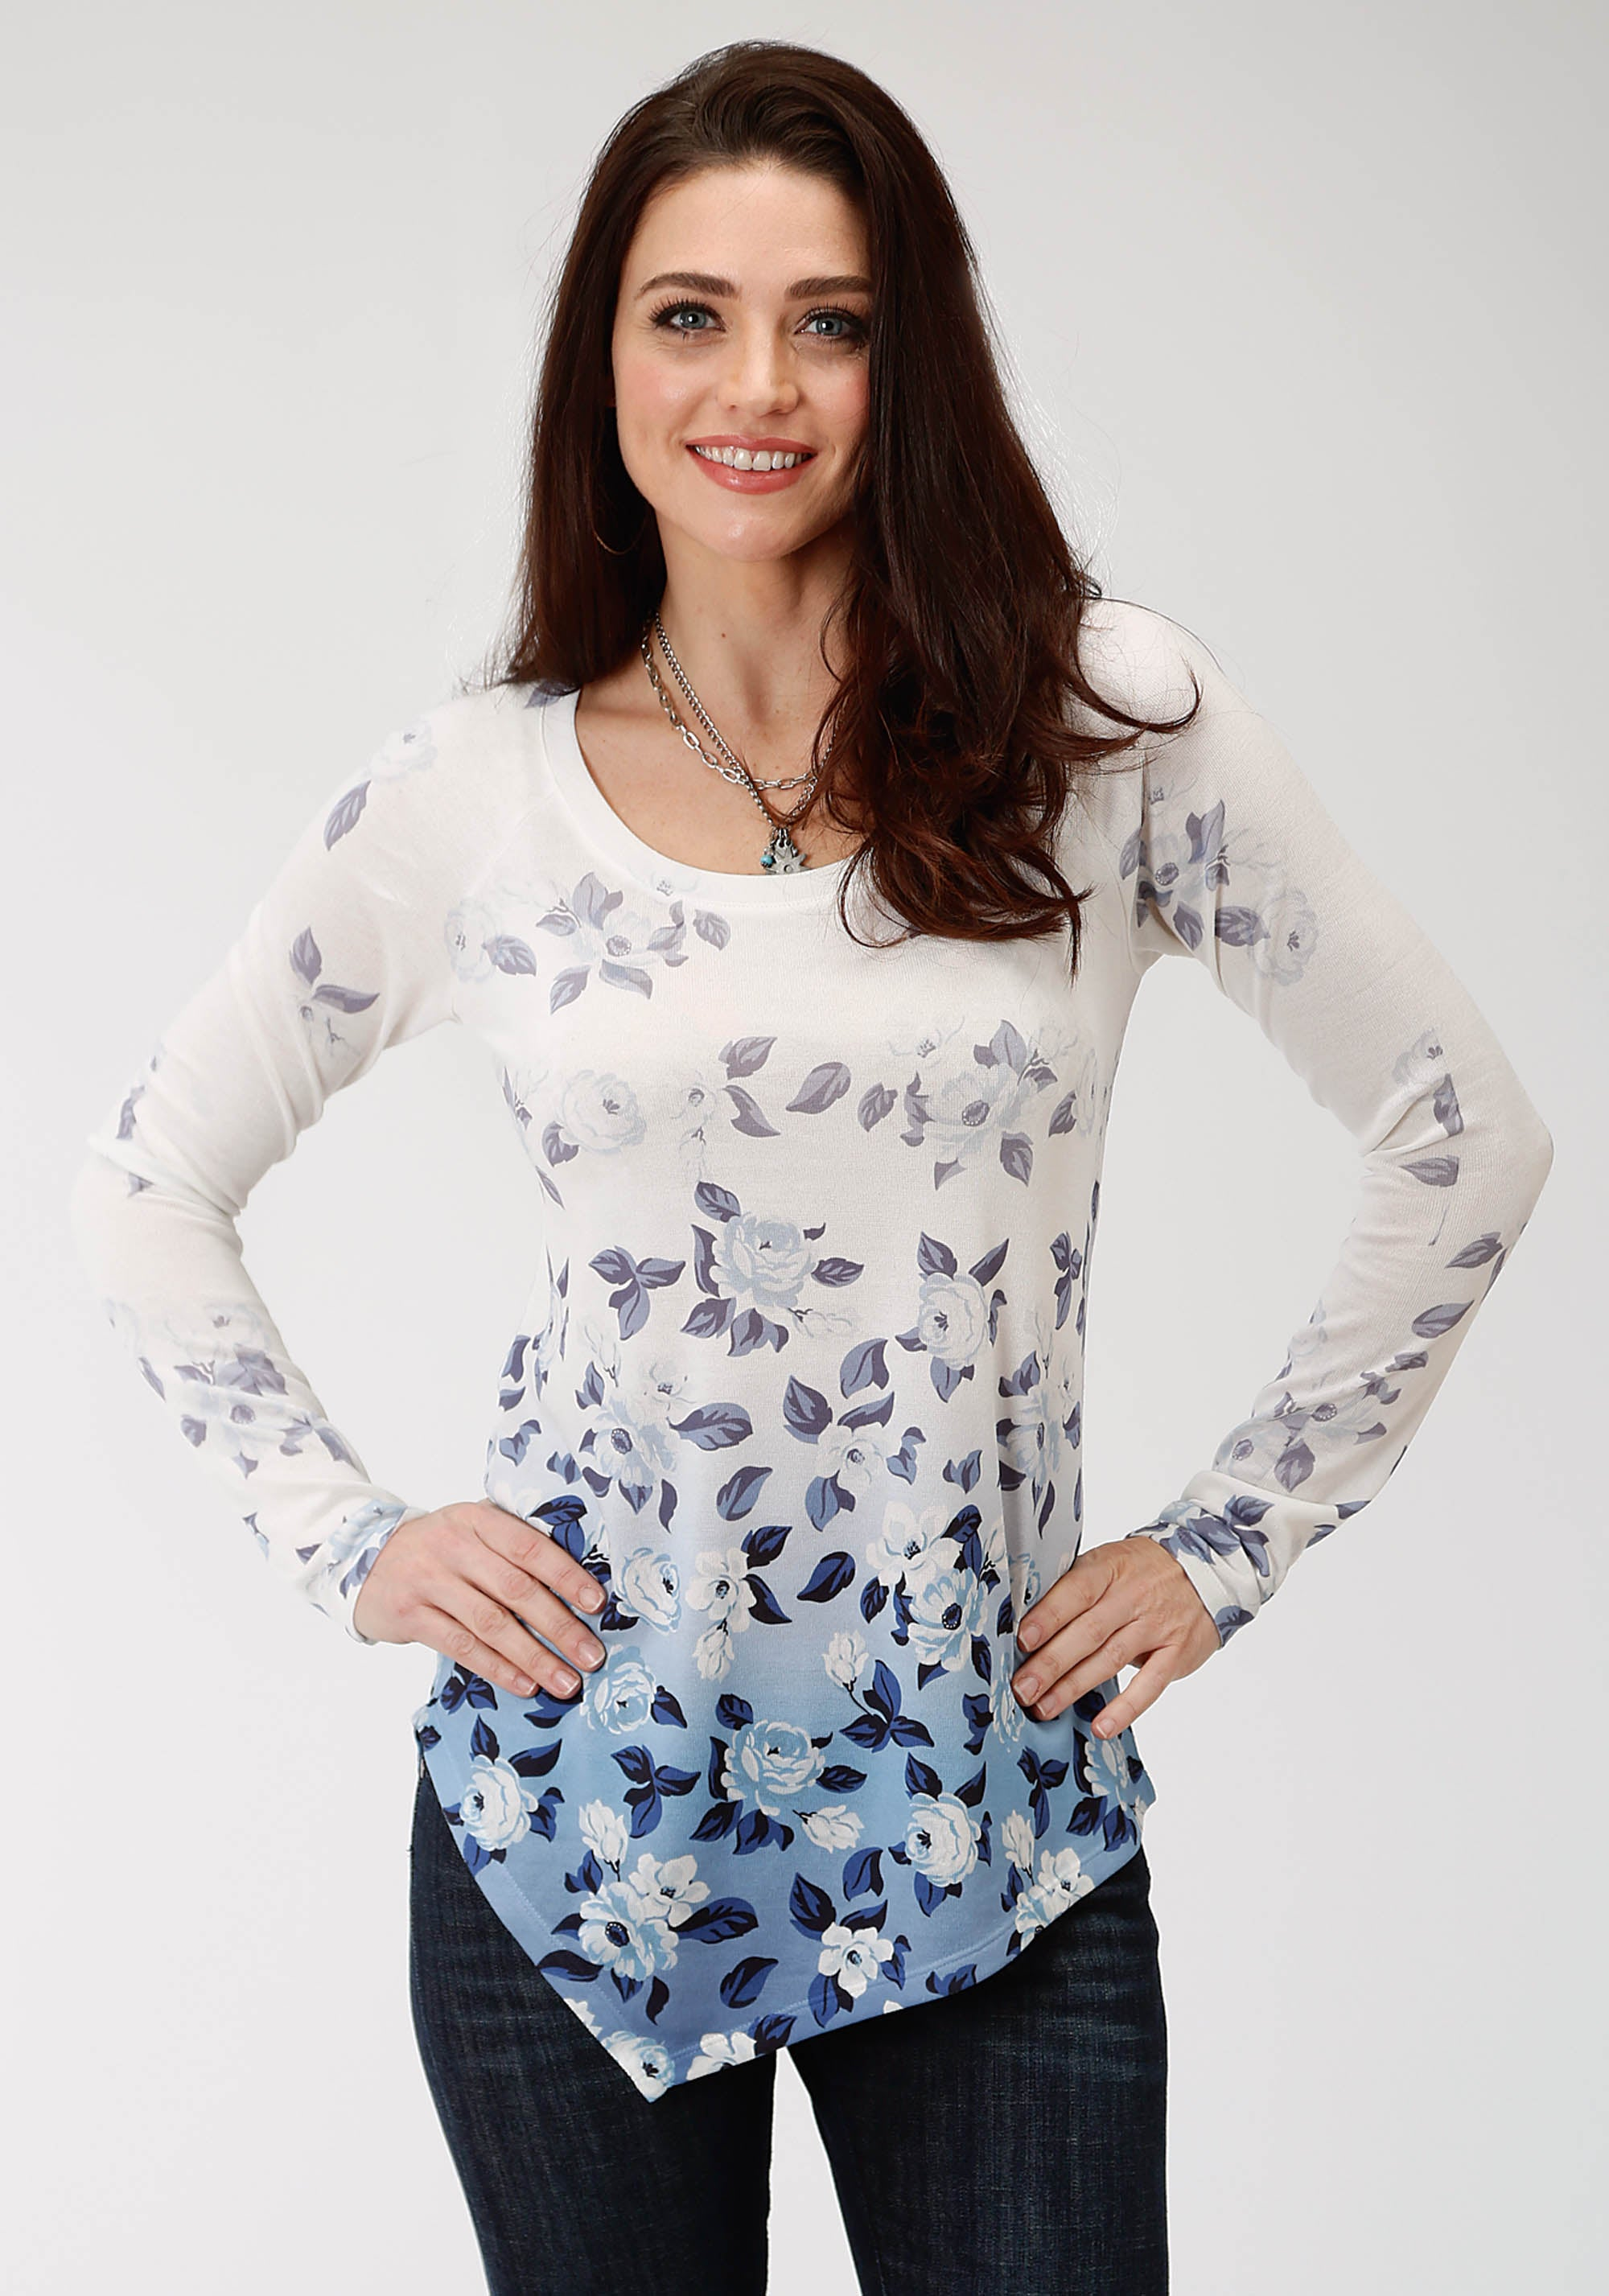 ROPER WOMENS WHITE 9505 SWEATER JERSEY TOP STUDIO WEST COLLECTION- STEEL MAGNOLIAS LONG SLEEVE